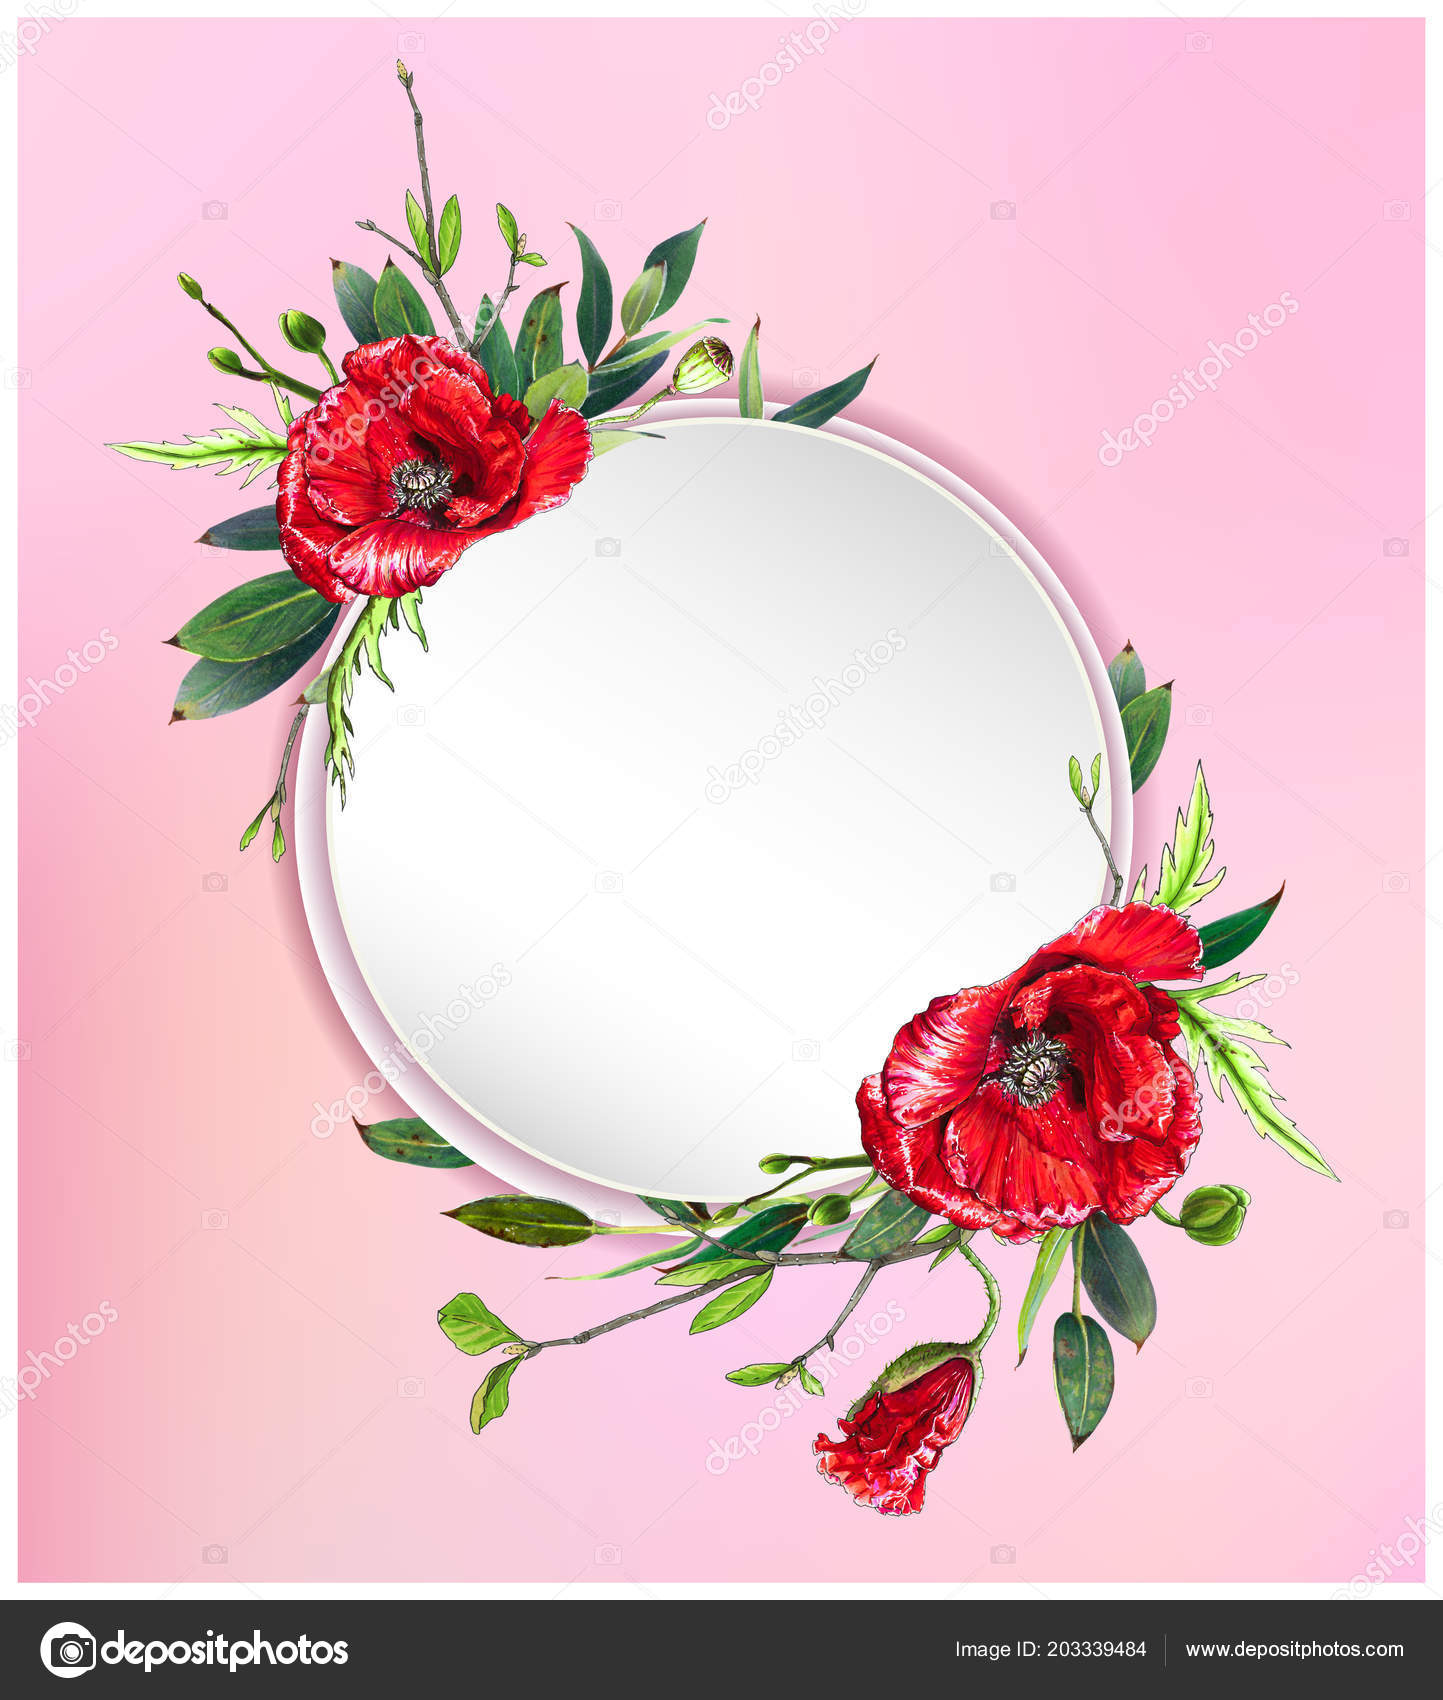 Colorful Floral Background Beautiful Flowers Red Poppies Leaves Markers Art Stock Photo C Inna73 203339484